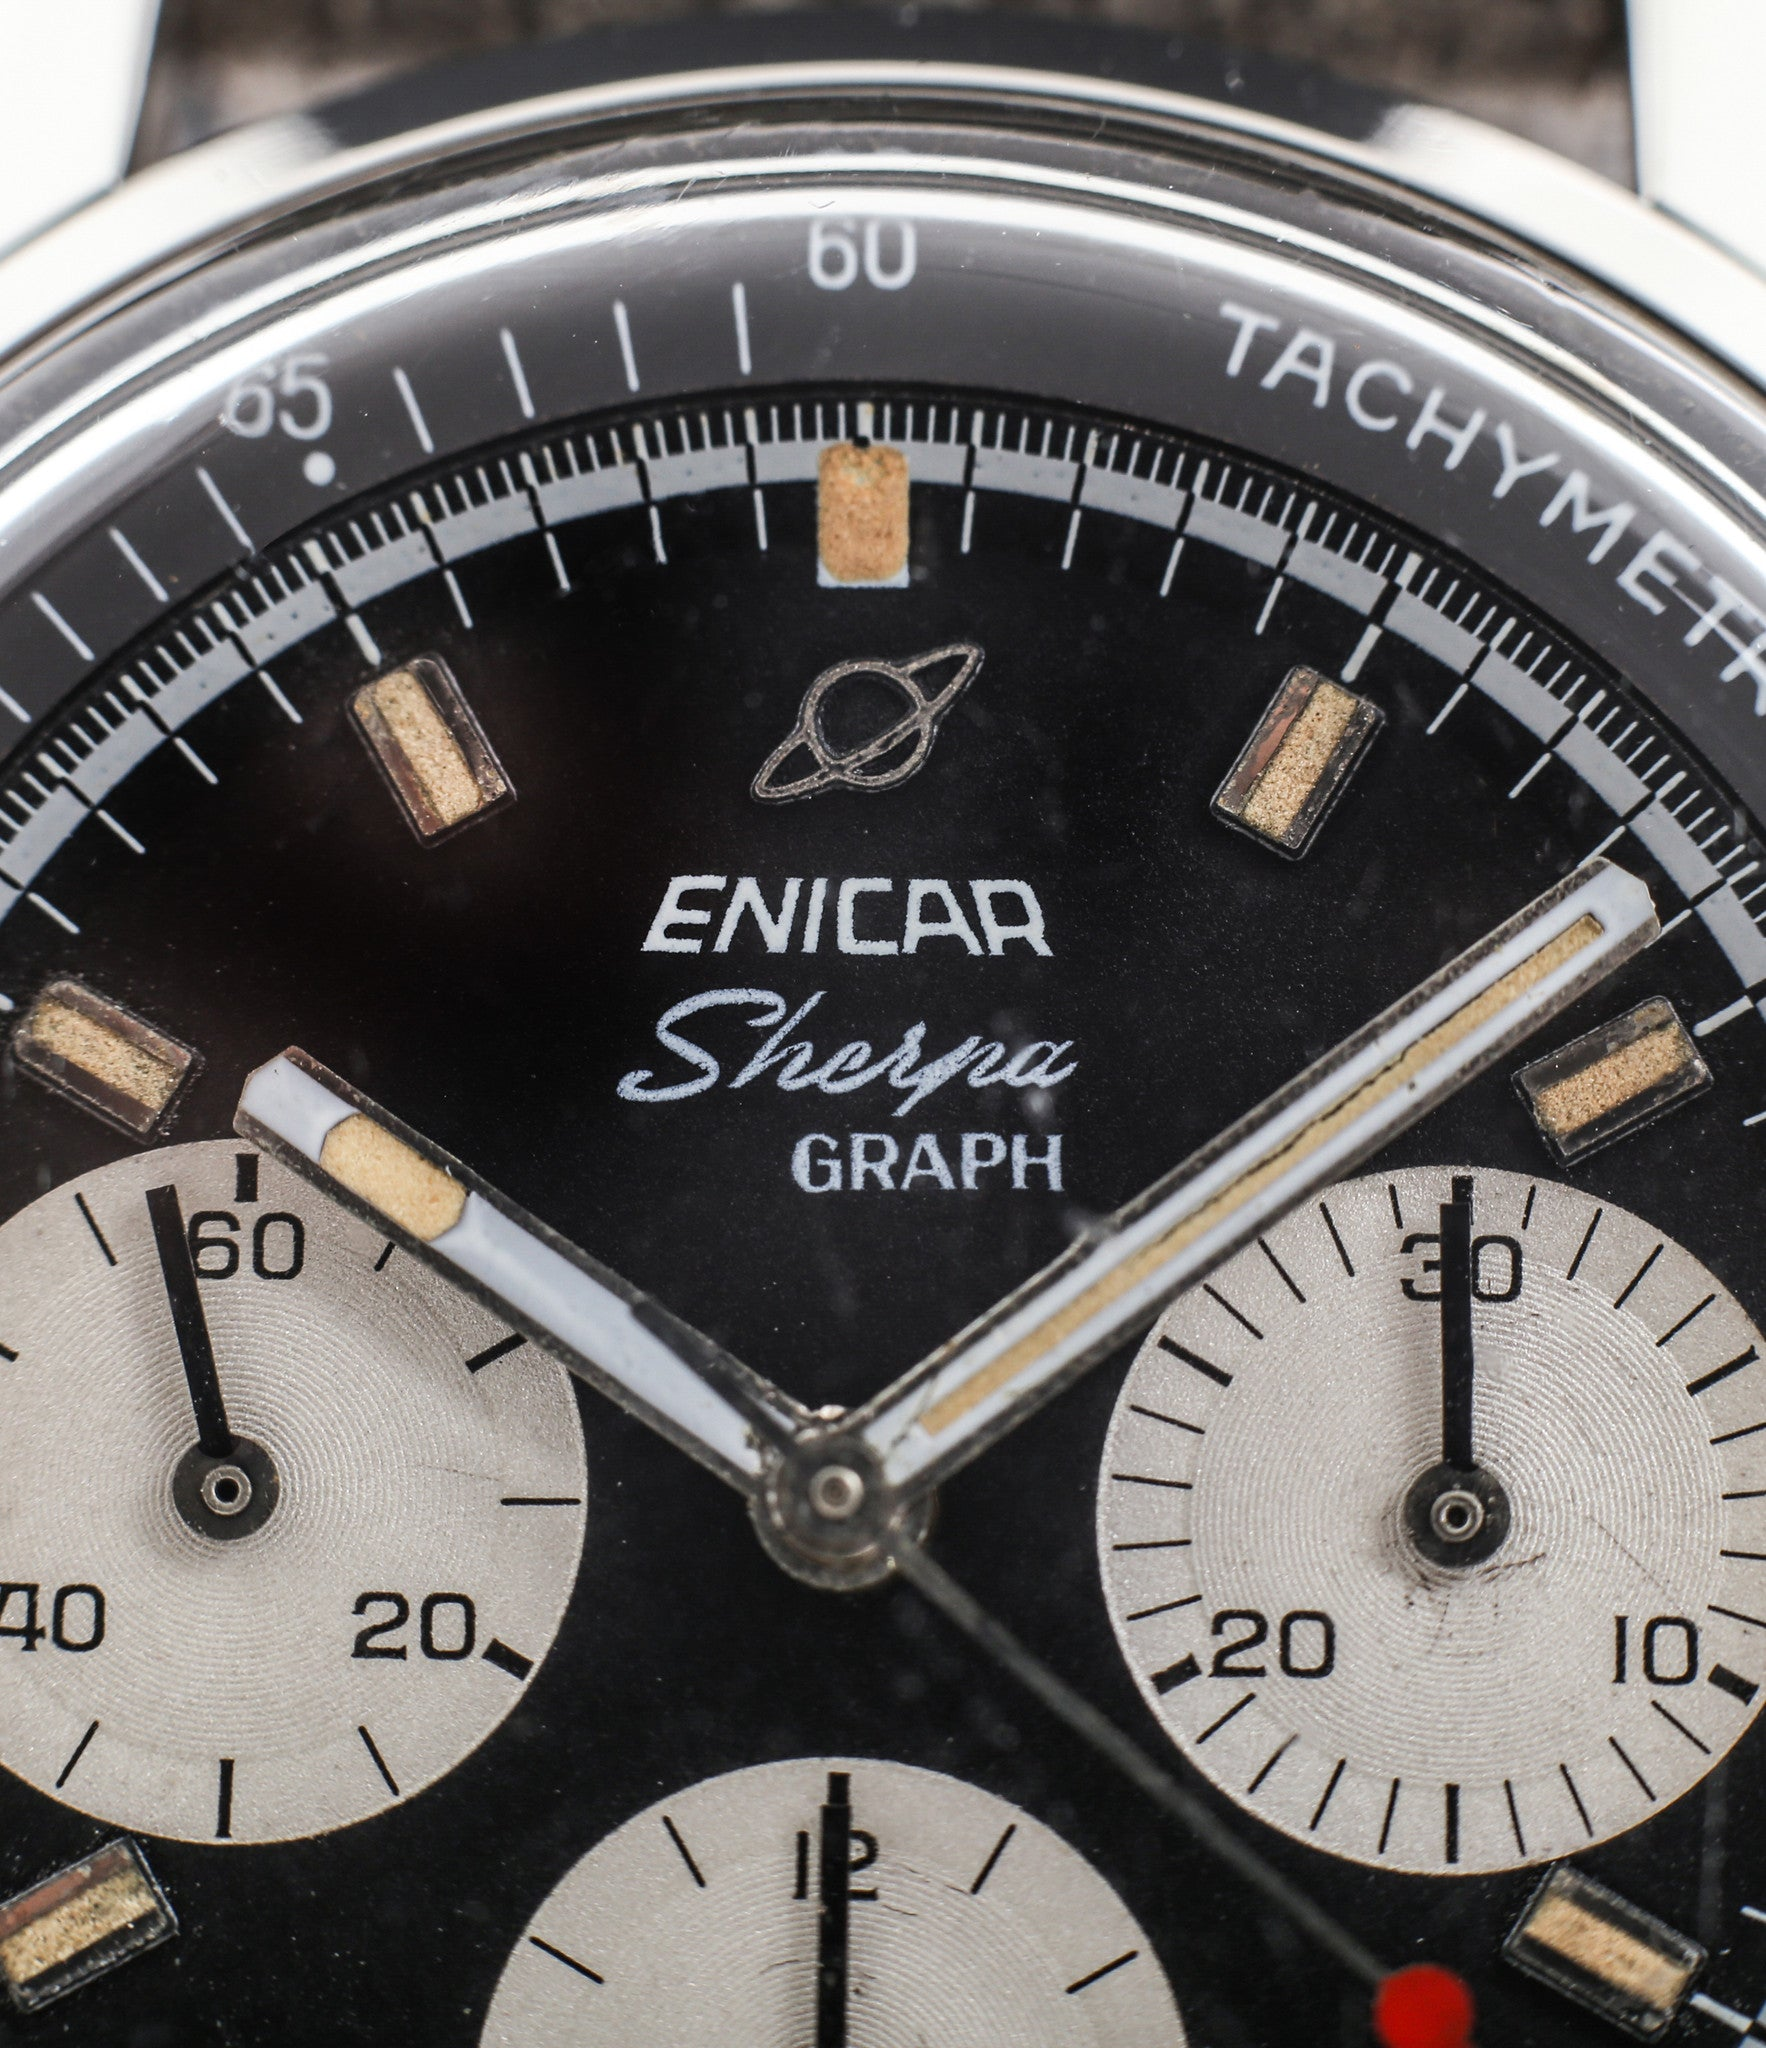 unrestored Enicar Saturn logo buy vintage Enicar Sherpha Chronograph 300 Ref. 1962 steel Valjoux 72 manual-winding rare racing watch at WATCH XCHNAGE London with tacyhmeter scale